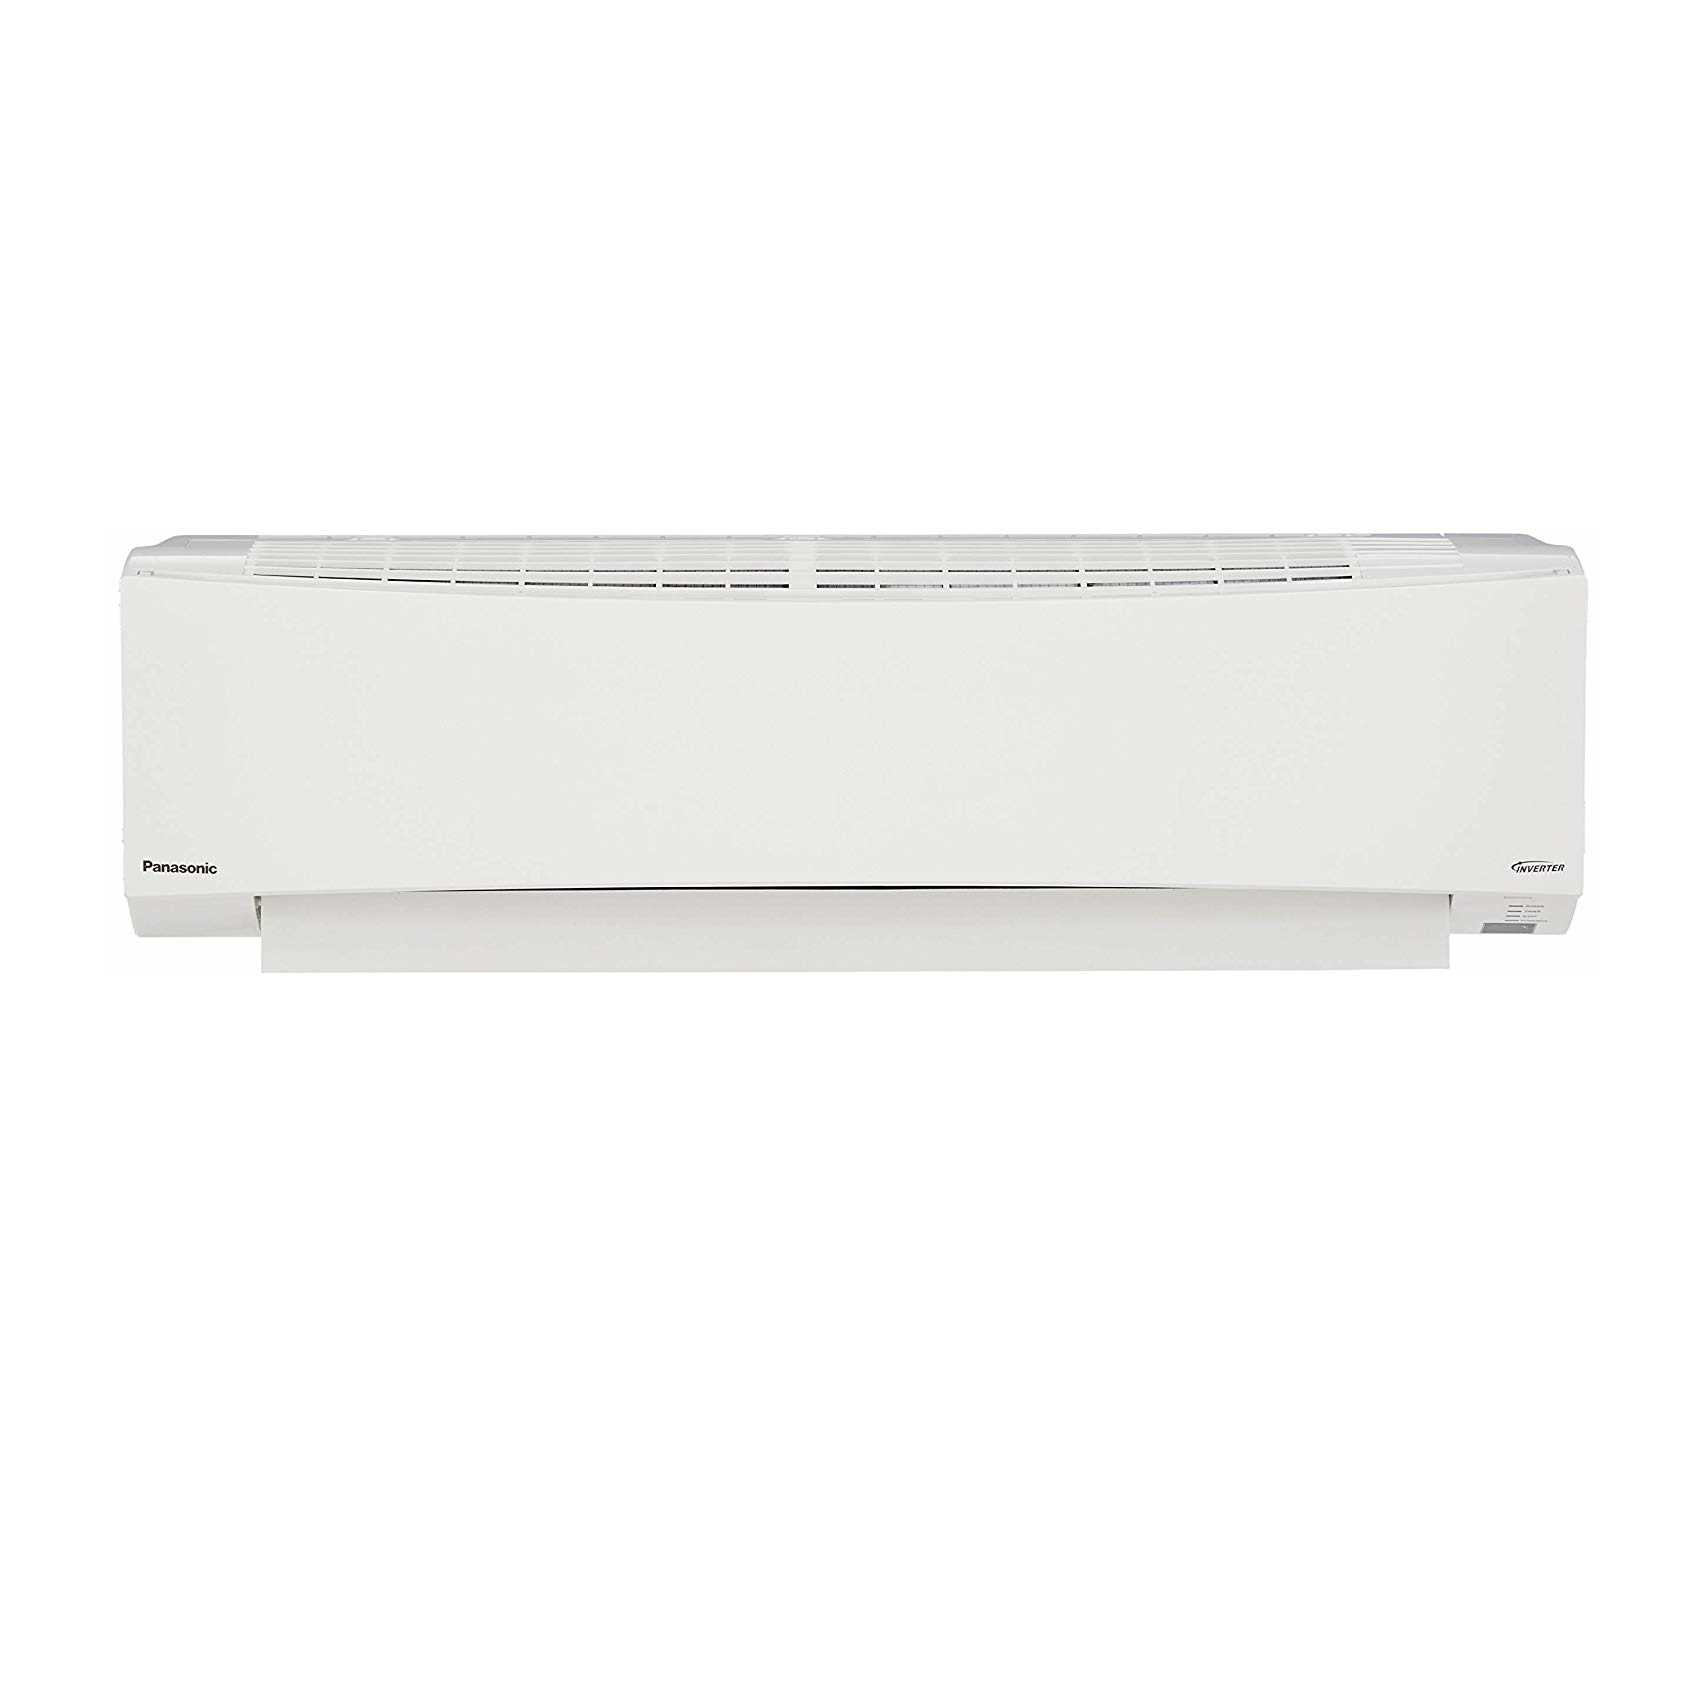 Panasonic CS CU SU18VKYW 1.5 Ton 3 Star Inverter Split AC